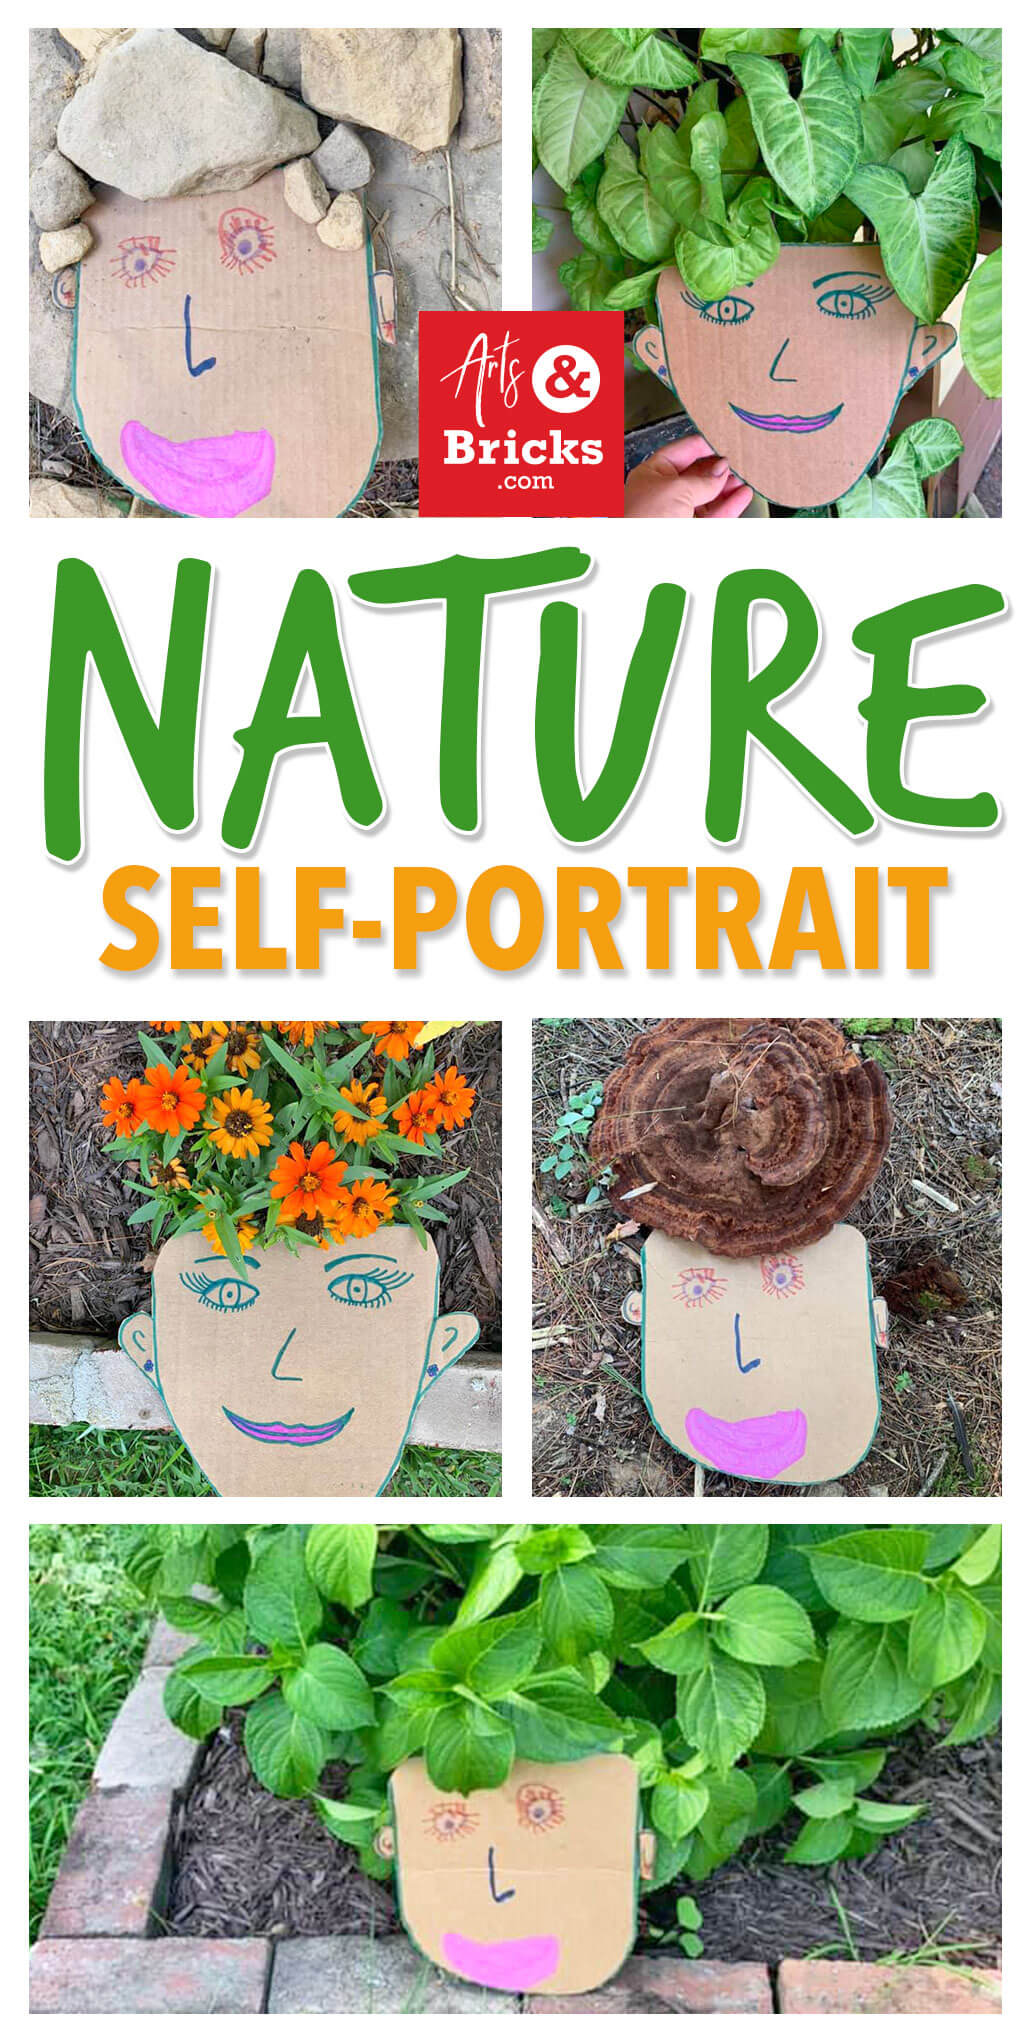 Soak up your last days of summer sunshine outside with your little ones making and photographing this adorable nature craft! Bonus! You'll have as much fun (and maybe even MORE fun) than your child with this one. Just cardboard, scissors, paints/markers or crayons and a camera required! Check out our blog for more inspirational images and instructions. #KidsArt #KidsCrafts